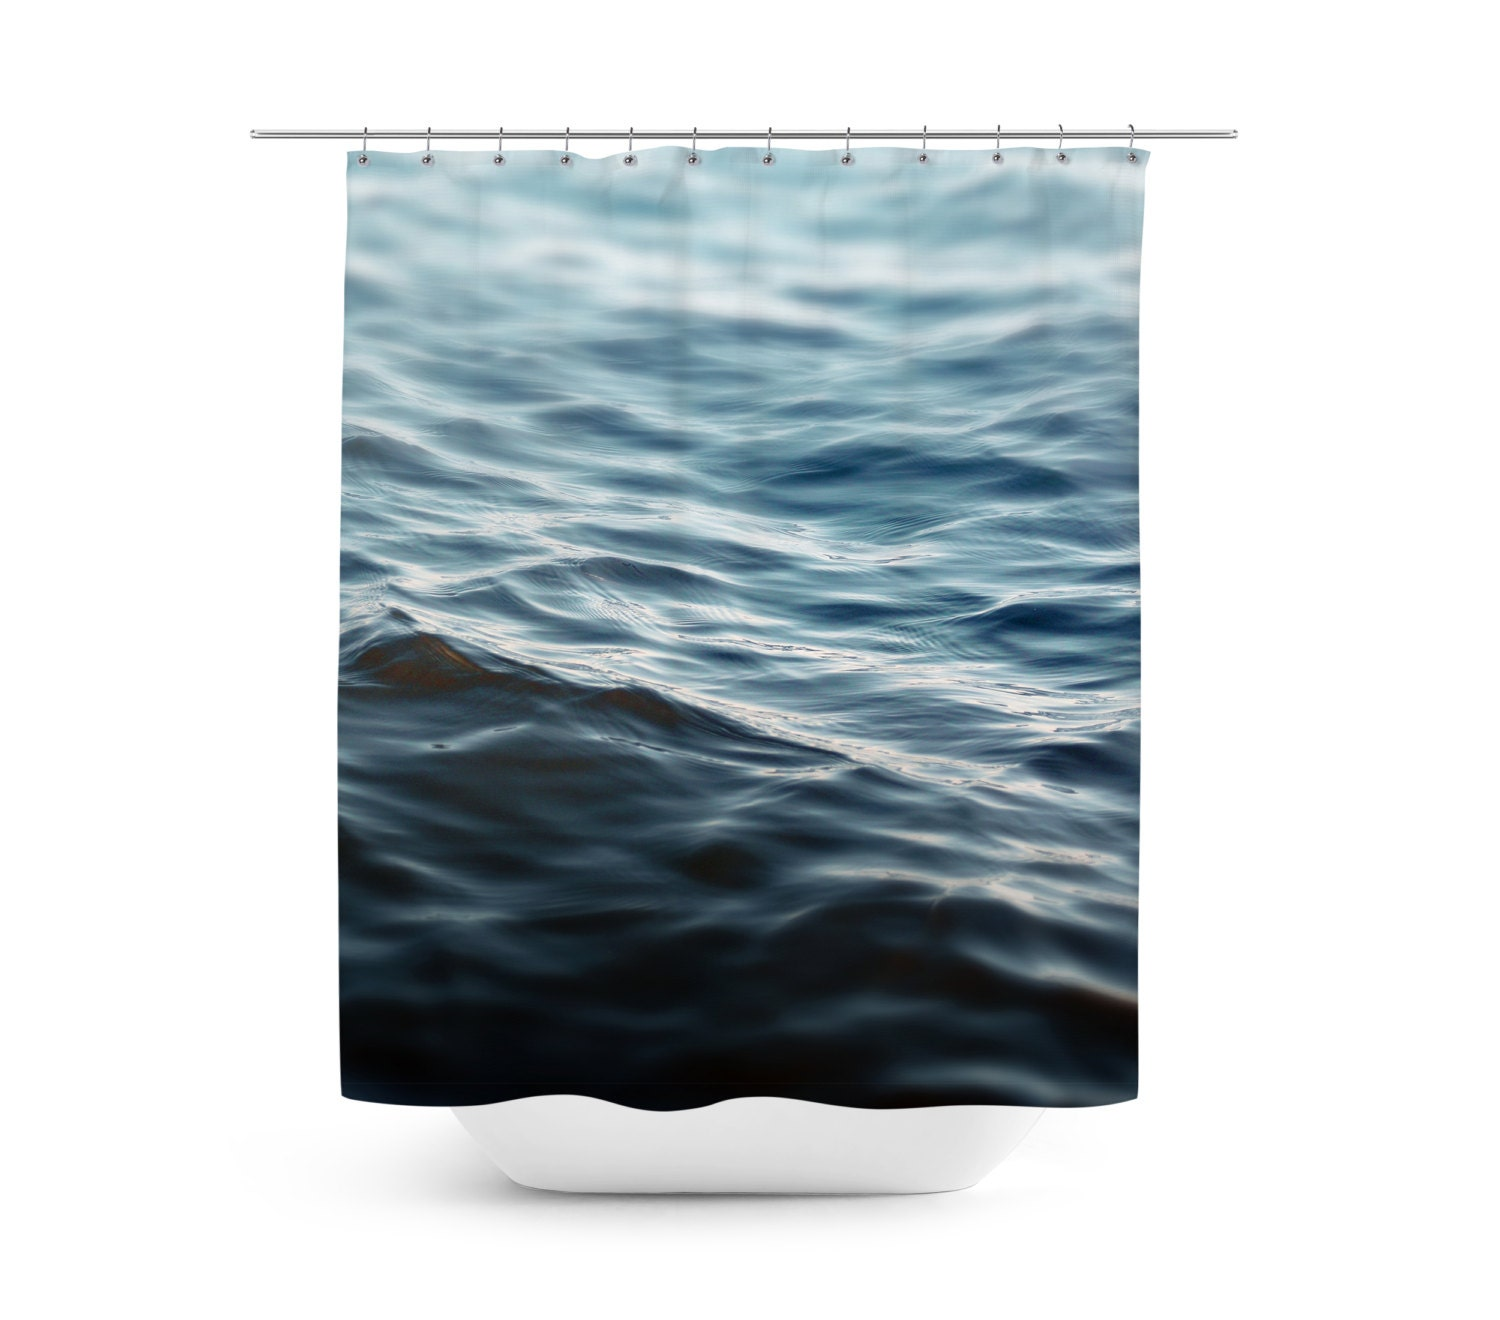 Dark Waters 2 Shower Curtain Navy Blue Ocean By NatureCityCo